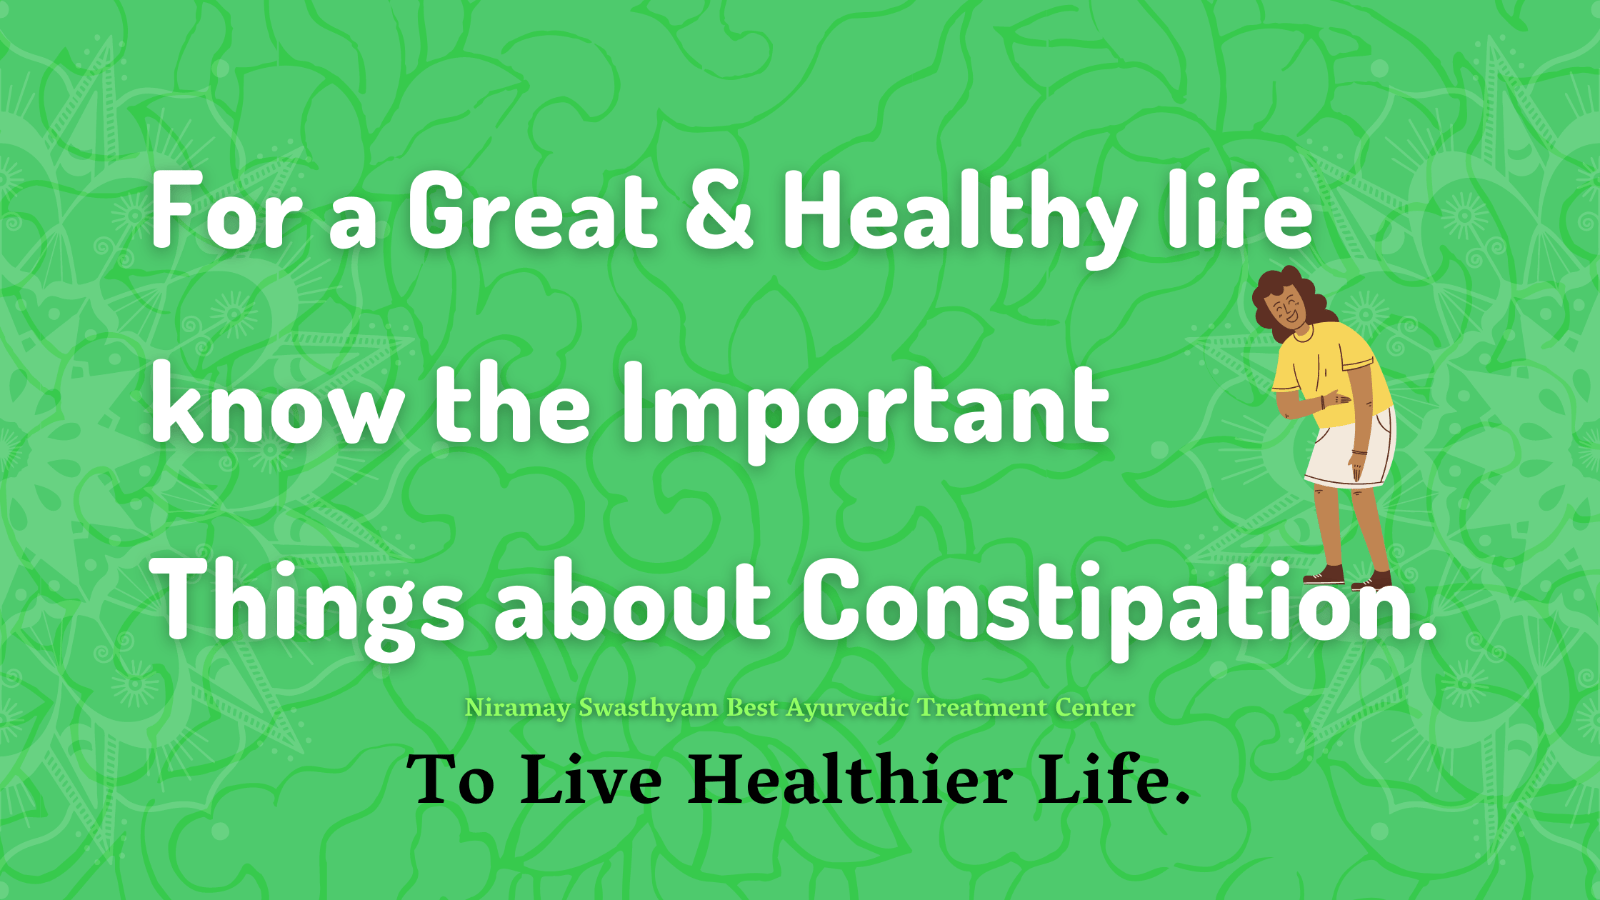 16 For great and healthy life know the important things about Constipation.